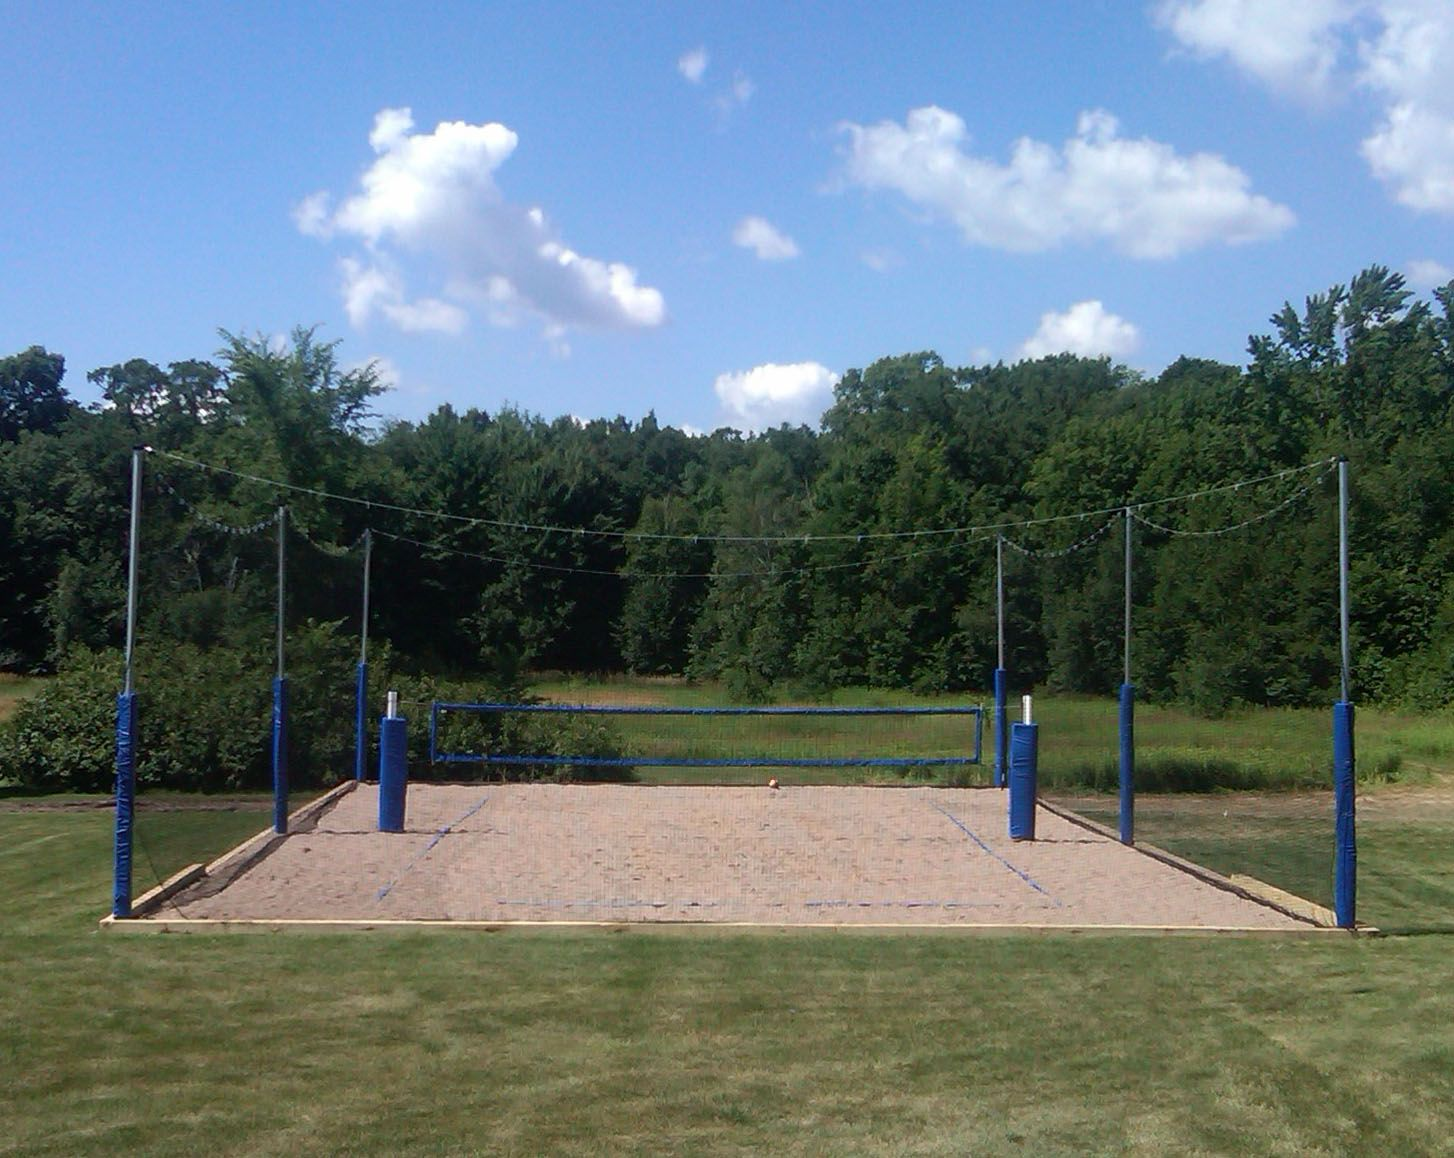 How To Construct A Volleyball Court Volleyball Court Backyard Beach Volleyball Court Sand Volleyball Court